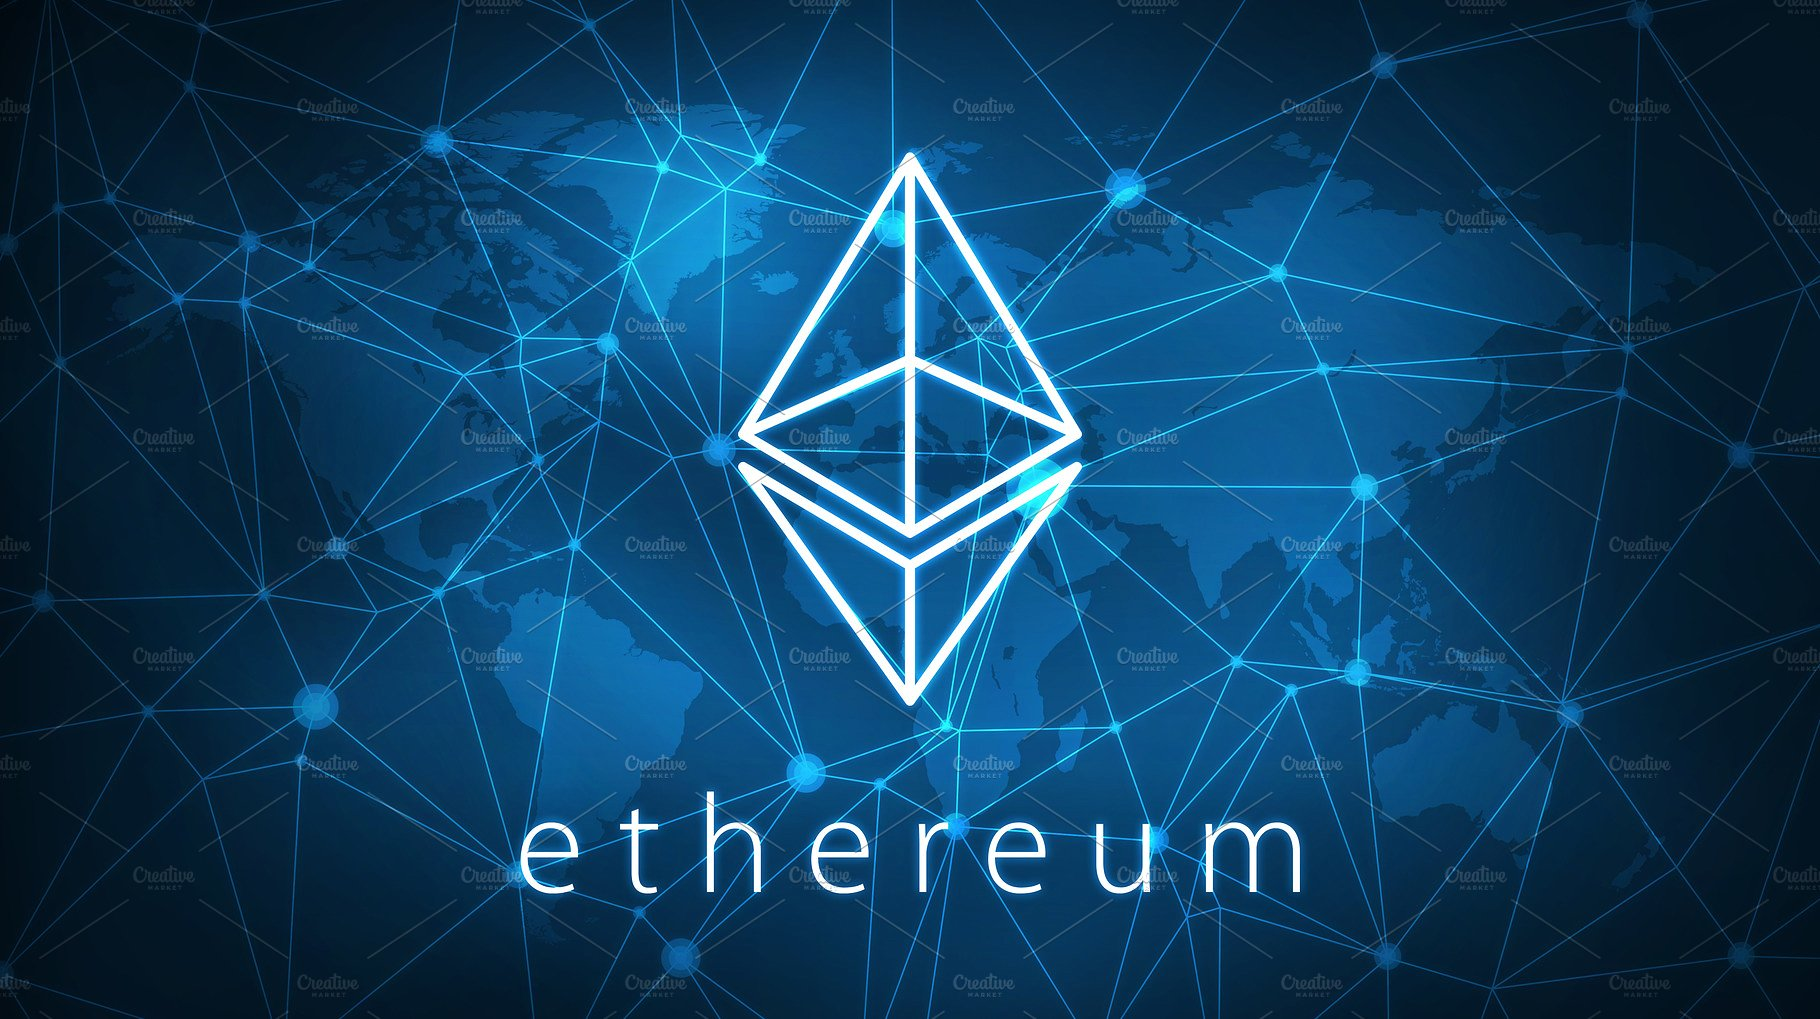 Ethereum Has Higher Concentration Compared to Bitcoin